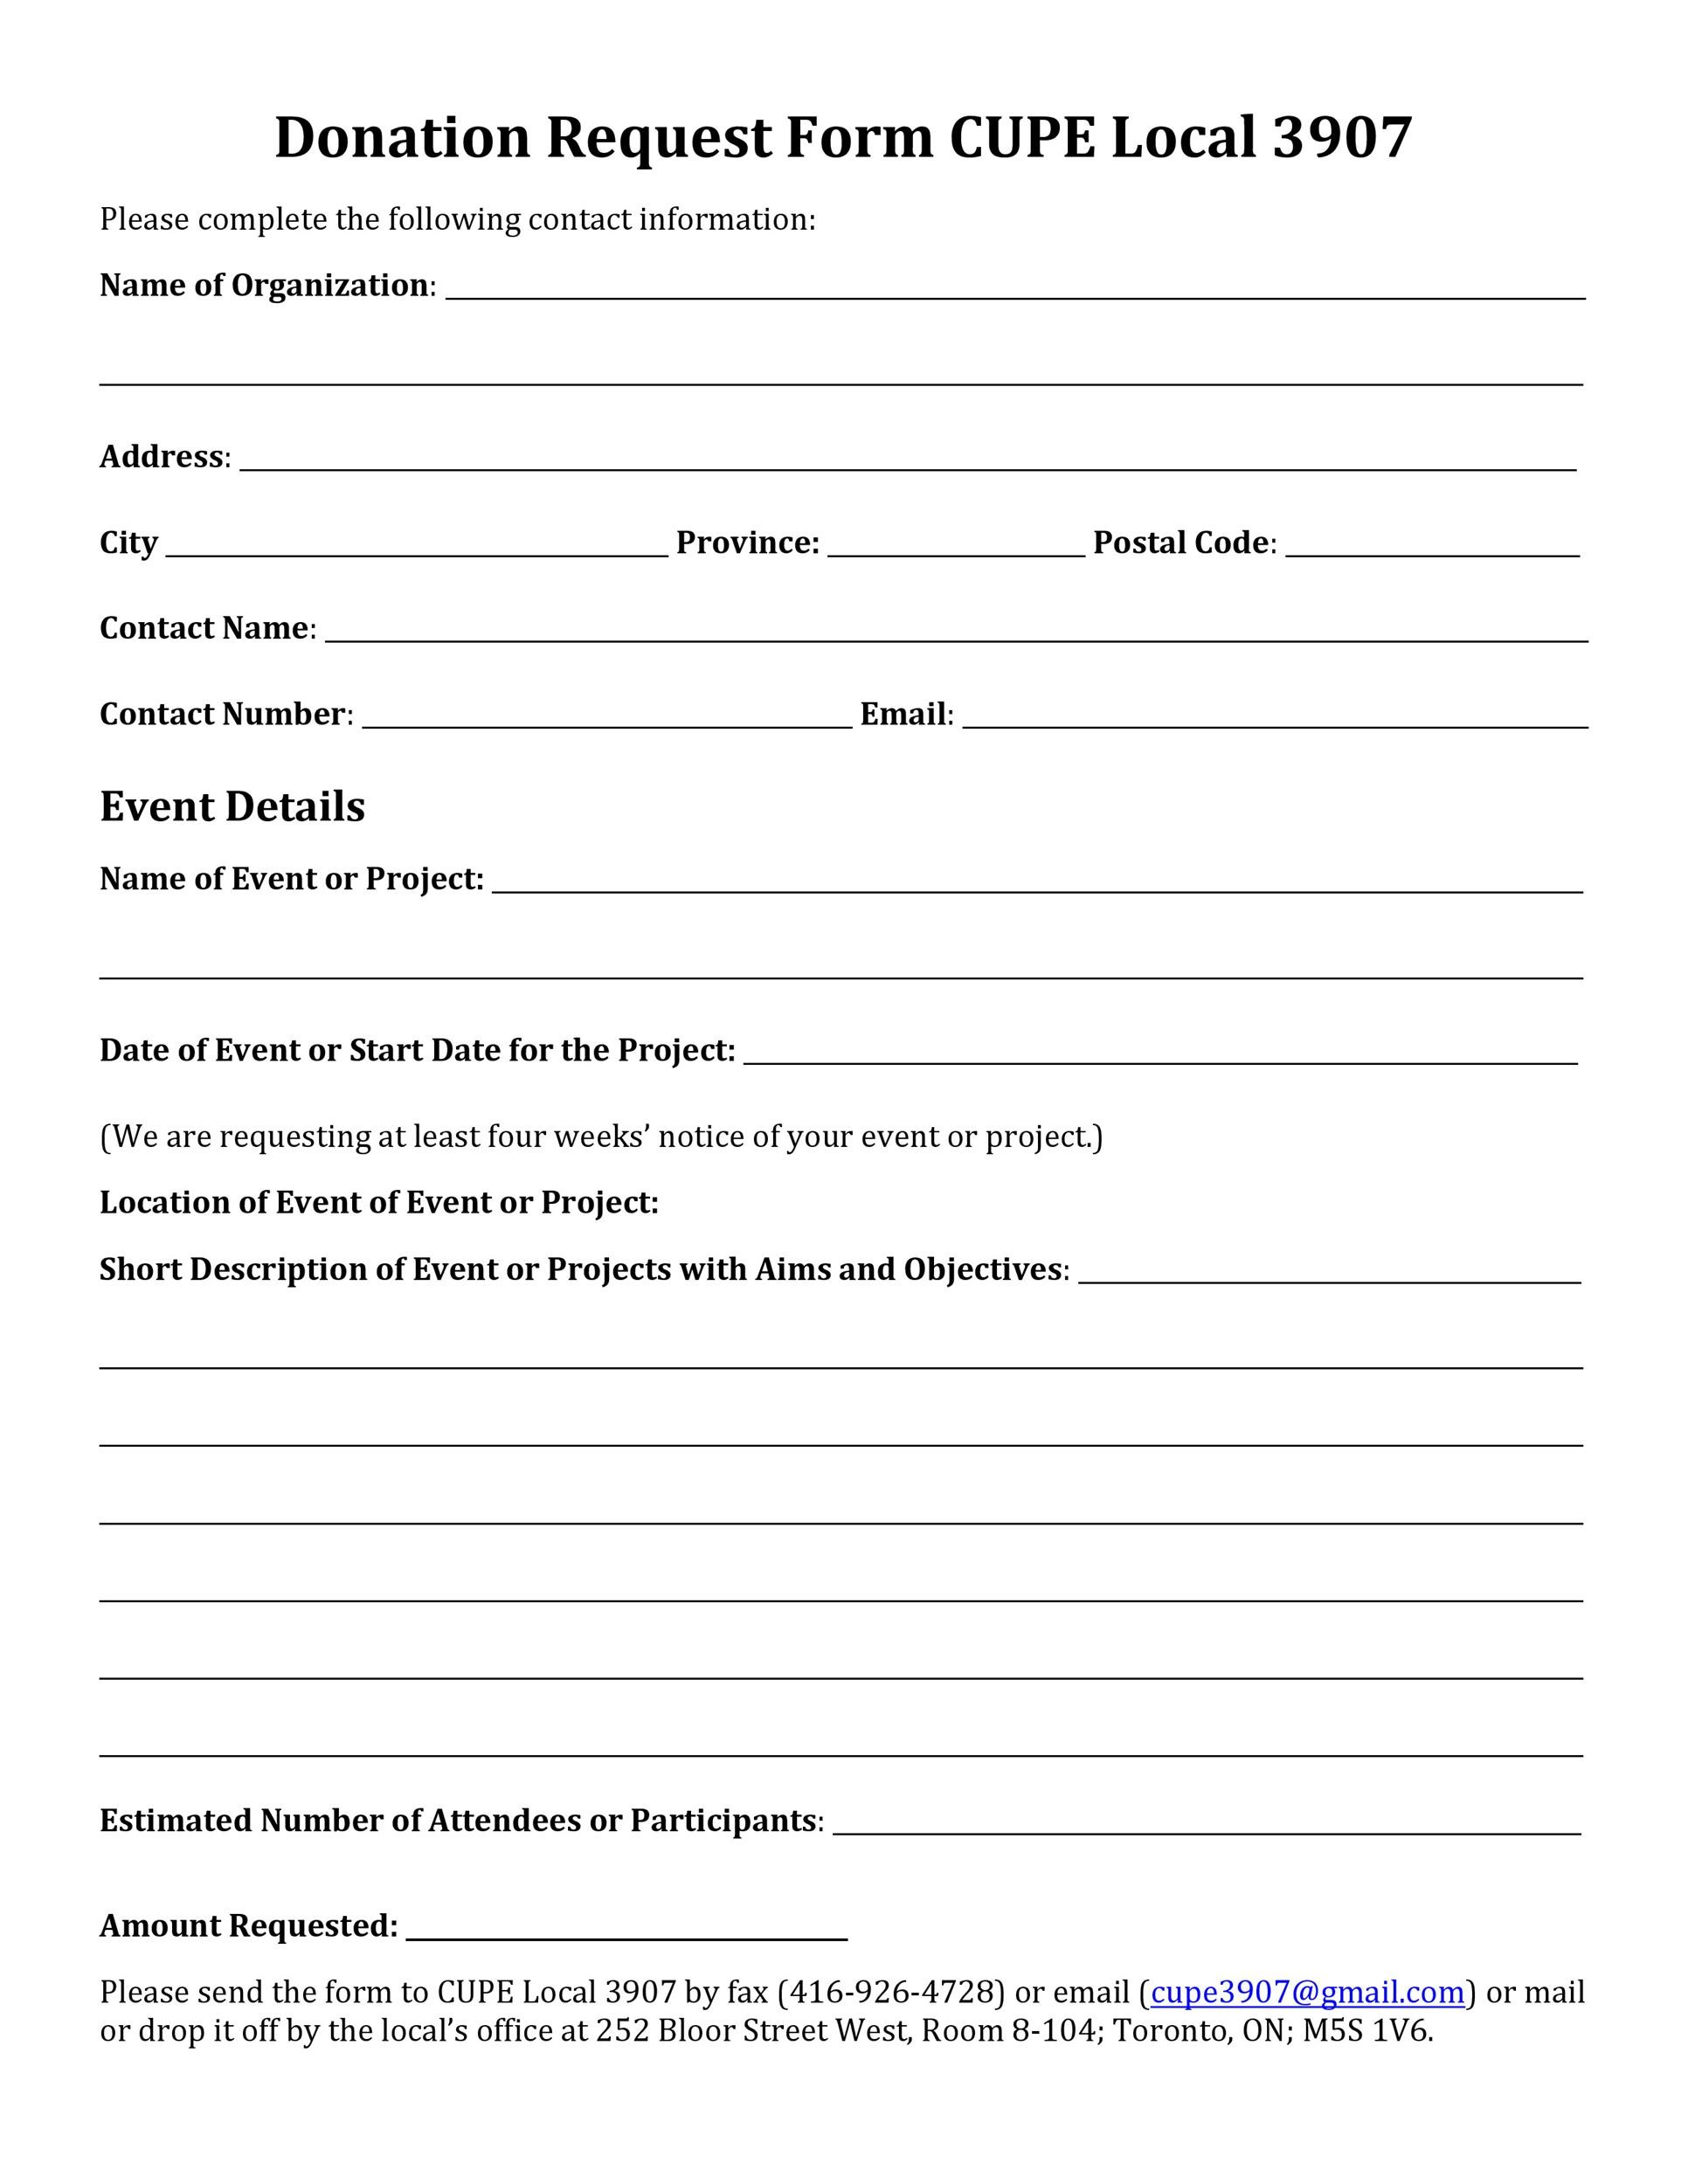 Donation Request Forms Template - Template